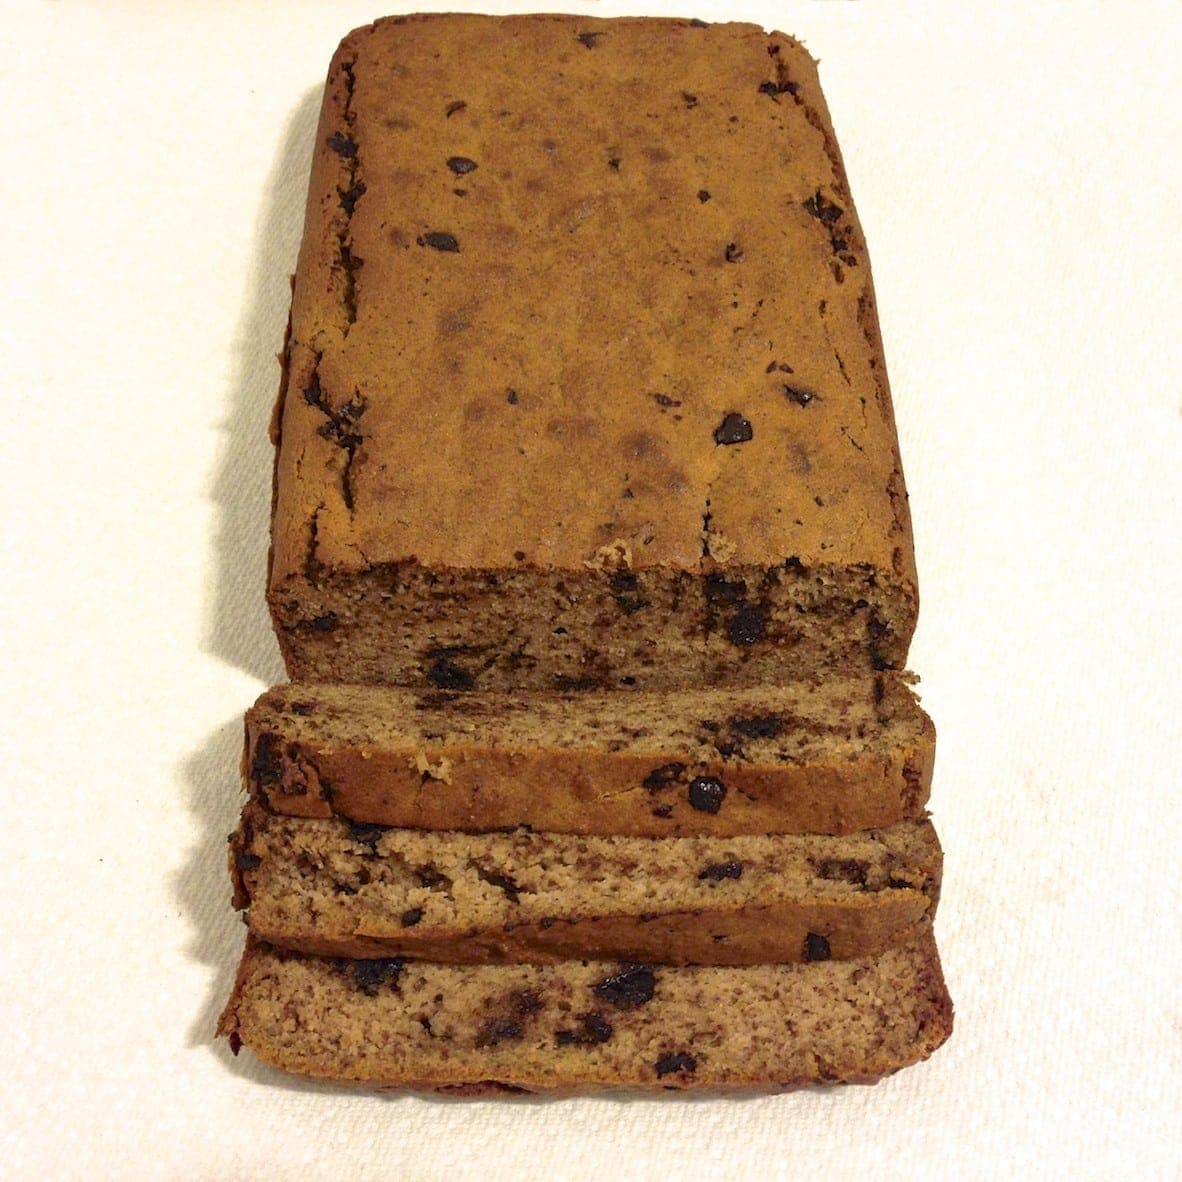 paleo chocolate chip banana loaf